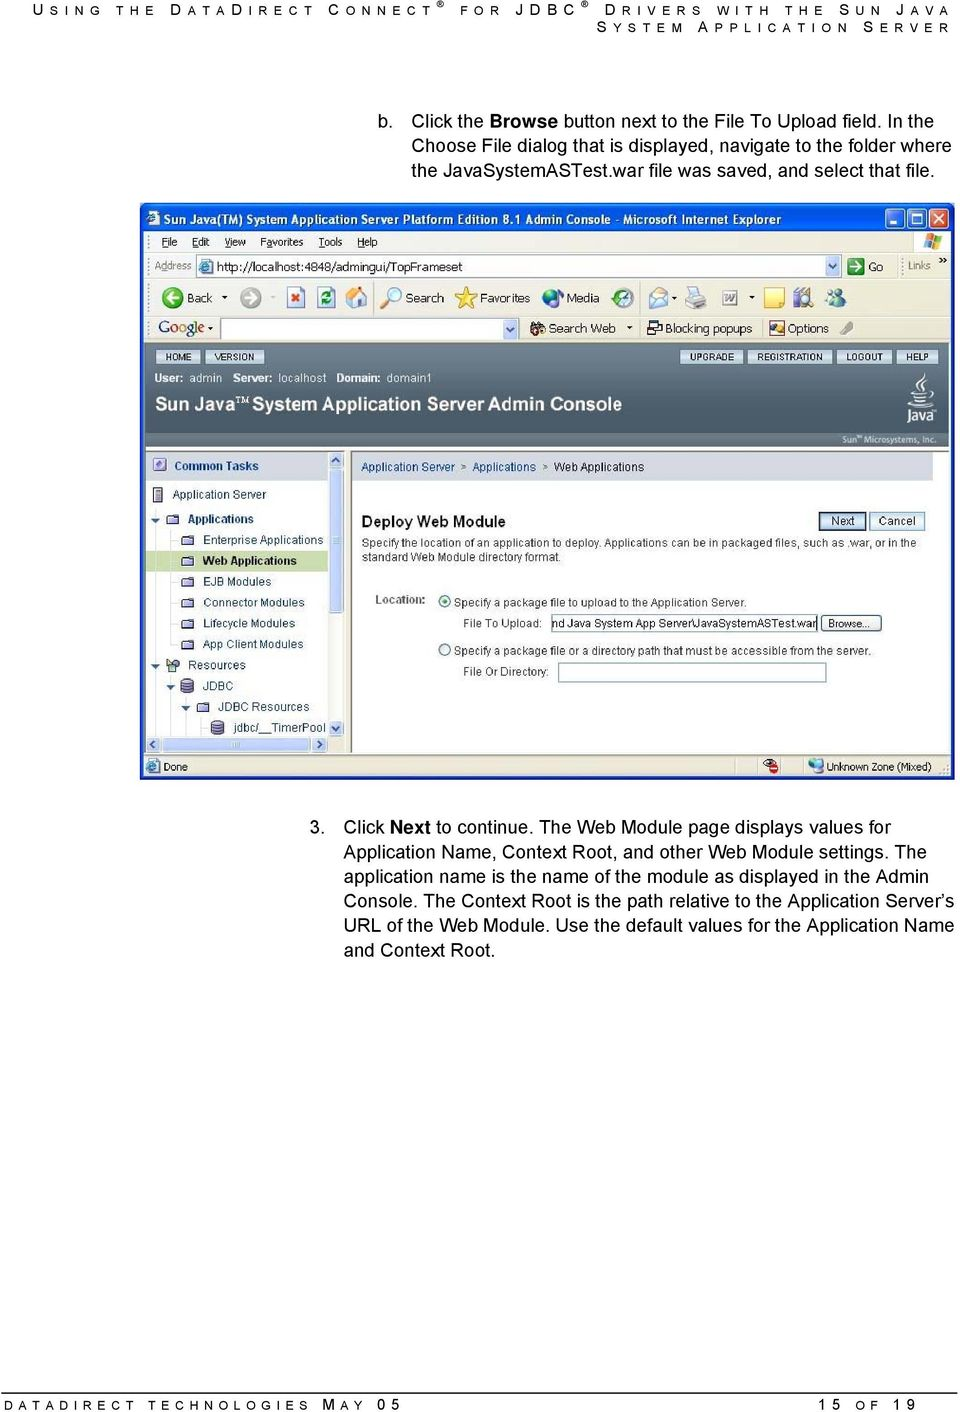 Click Next to continue. The Web Module page displays values for Application Name, Context Root, and other Web Module settings.